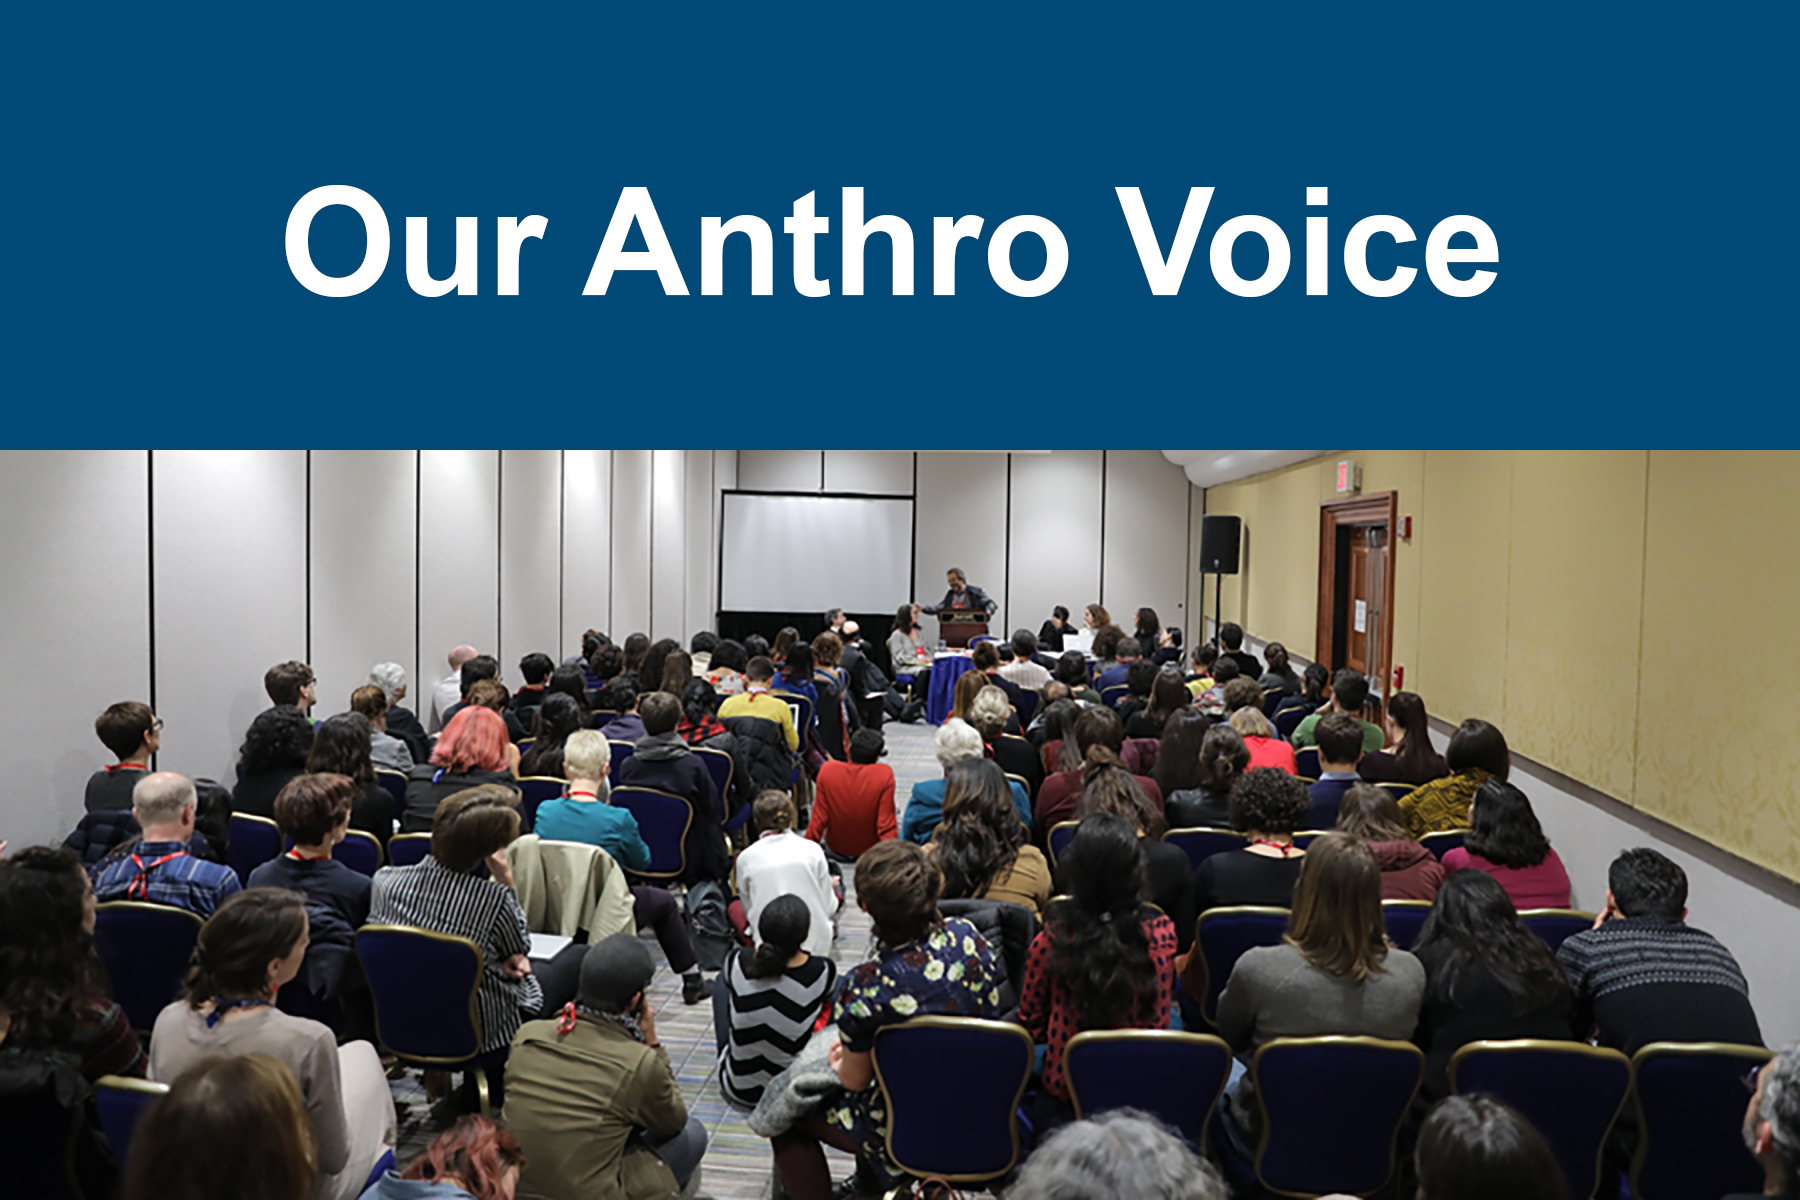 Our Anthro Voice